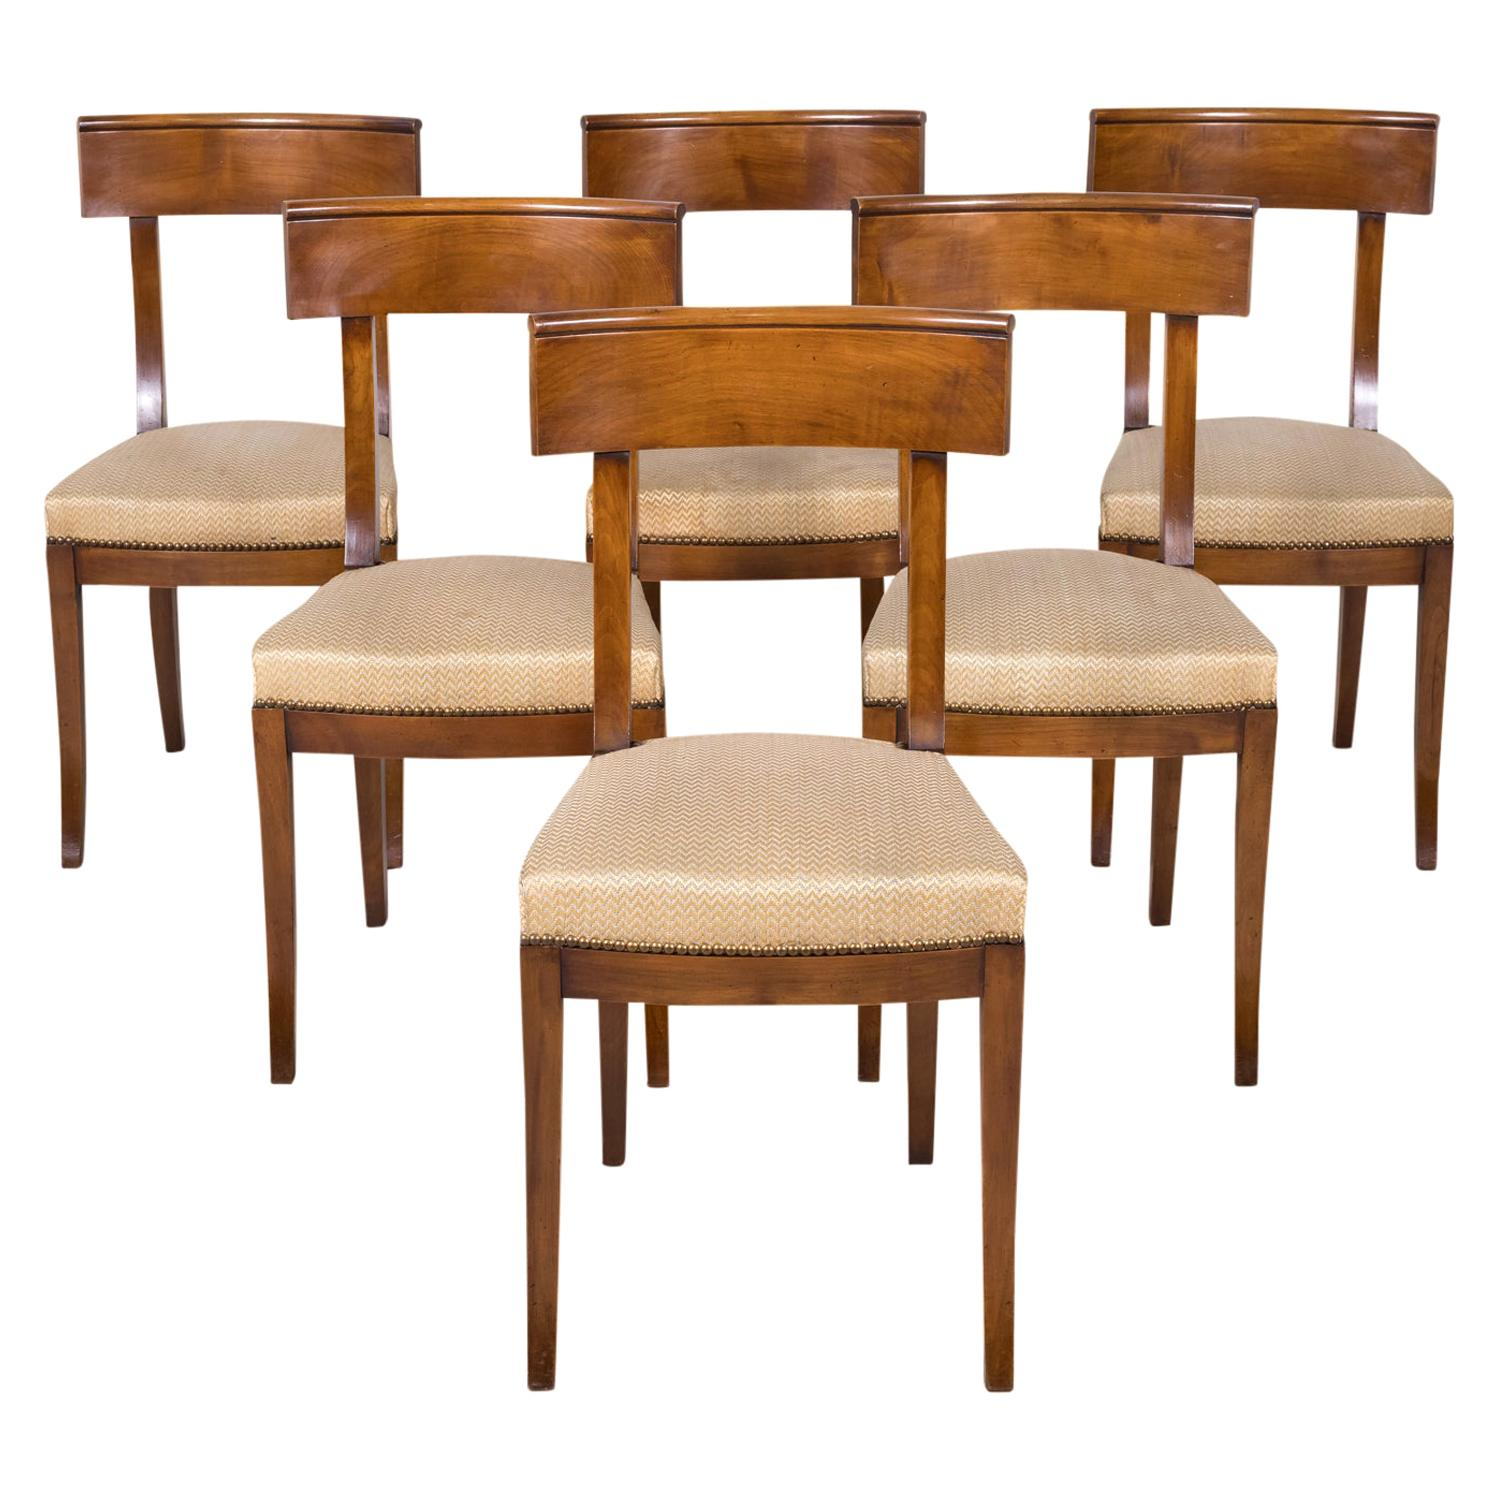 French Directoire Style Walnut Dining Side Chairs, Set of 6